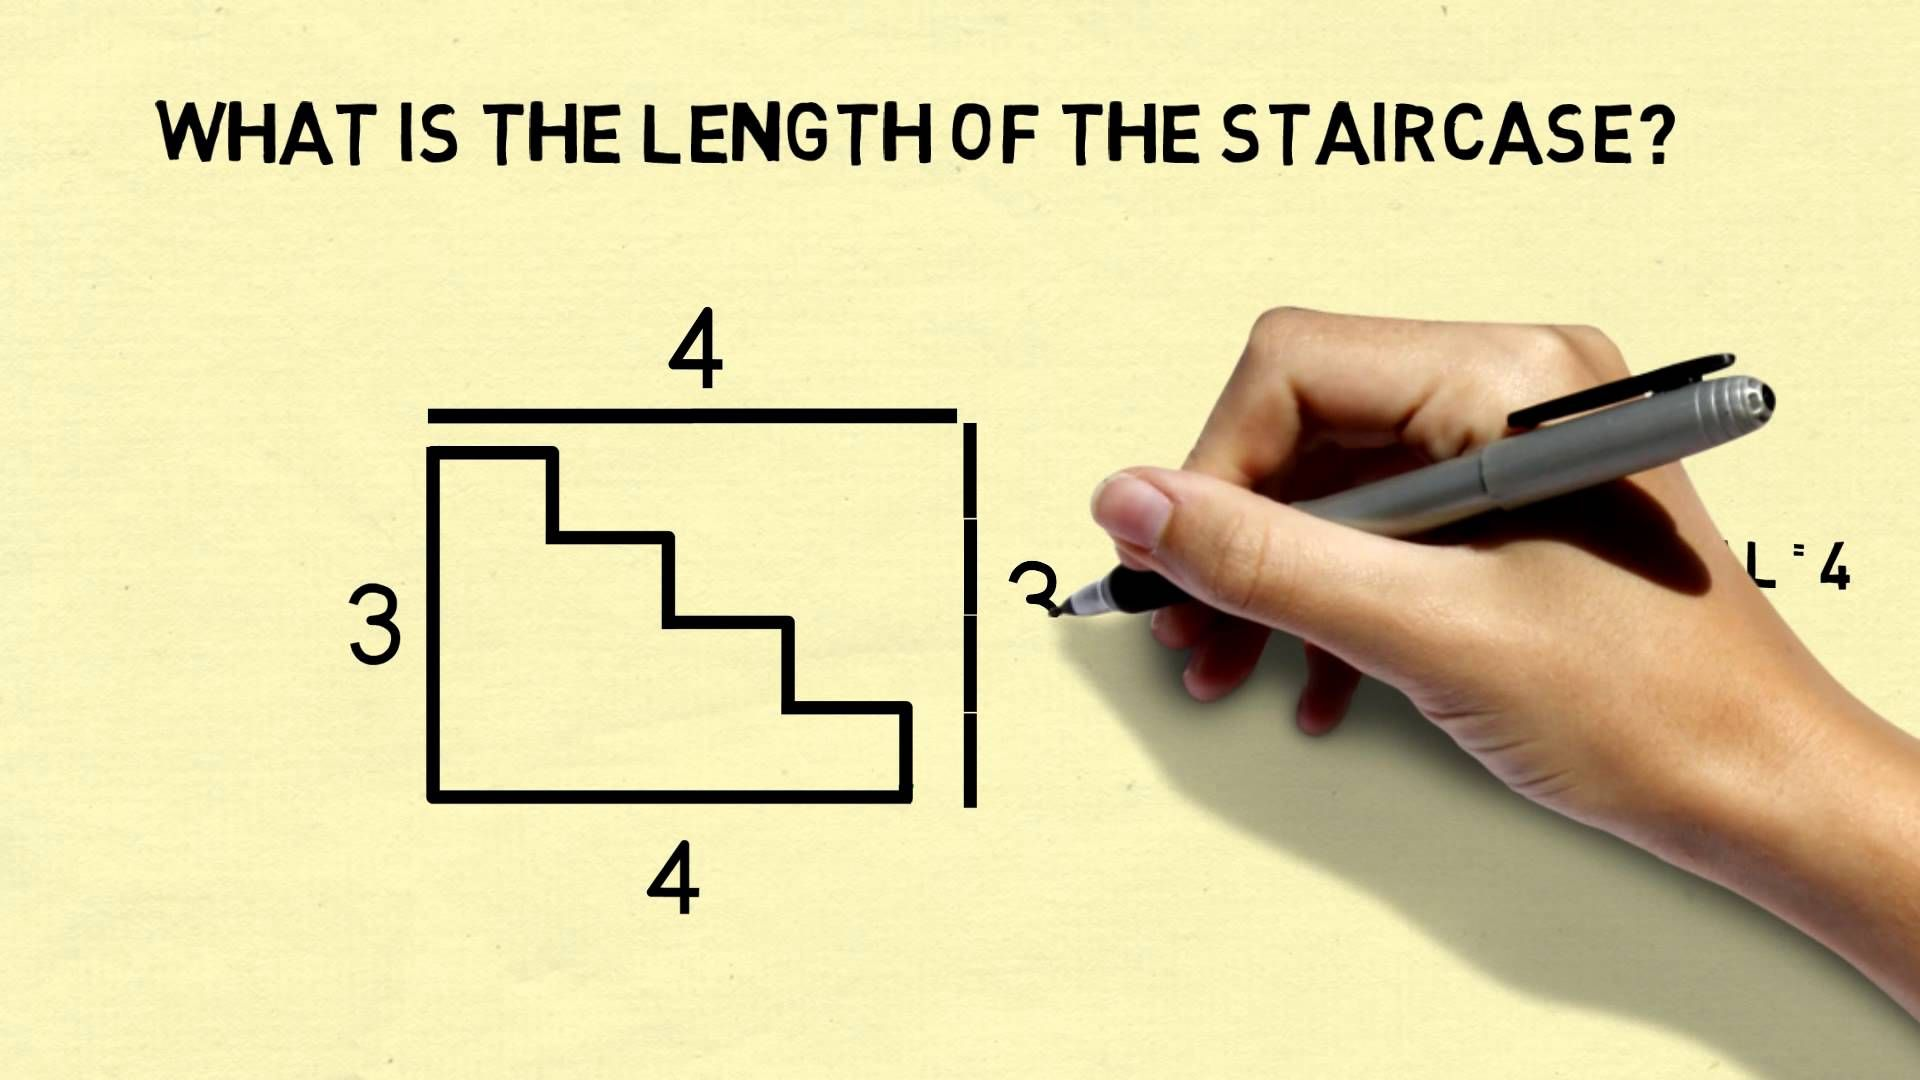 Is The Pythagorean Theorem Wrong The Staircase Paradox Says It Is This Week S Monday Puzzle Is In The Form Of A Pythagorean Theorem Theorems Math Worksheets [ 1080 x 1920 Pixel ]